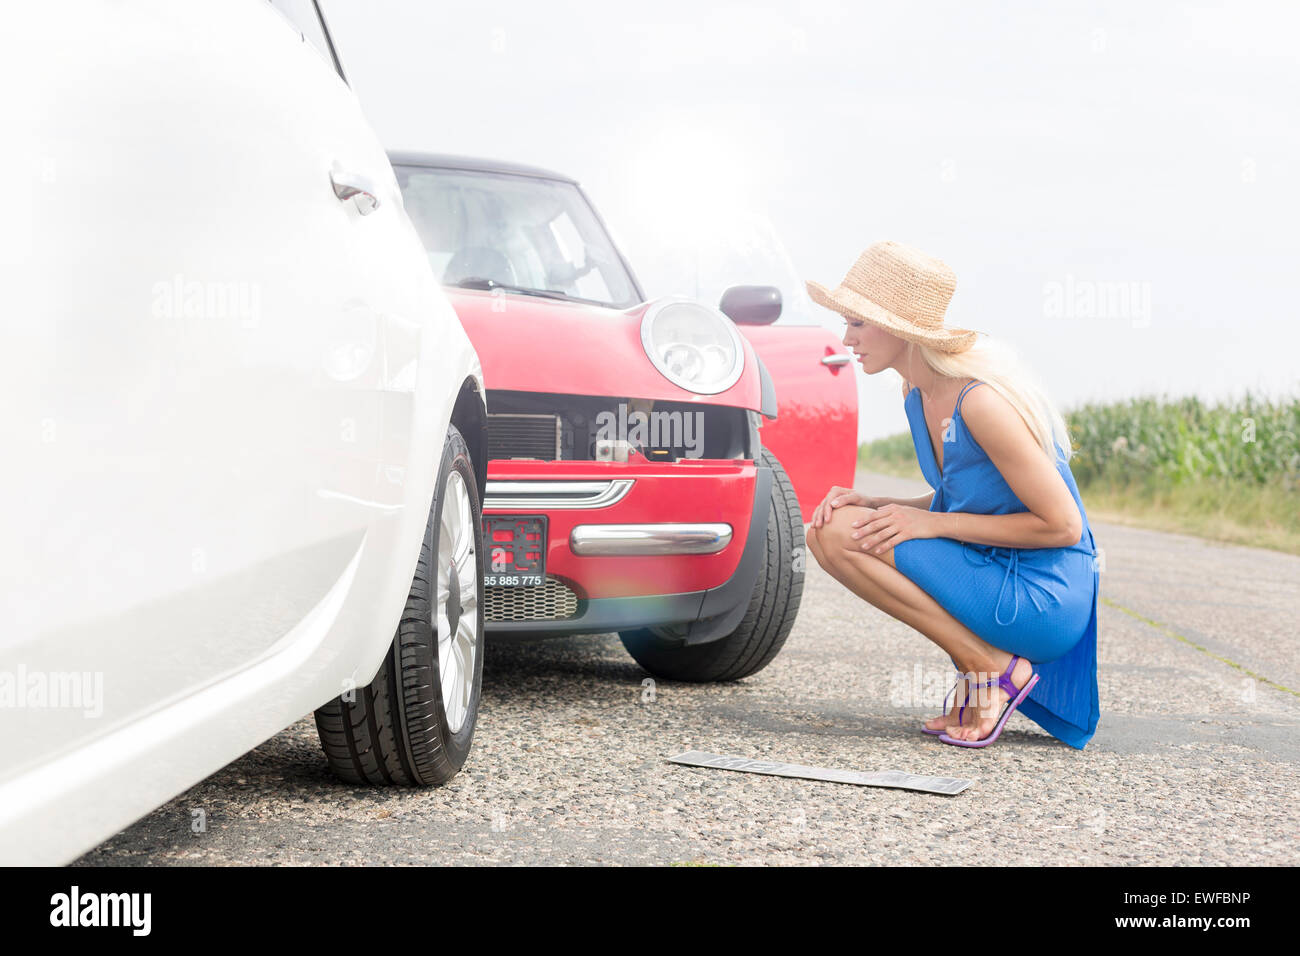 Full-length side view of tensed woman looking at damaged cars on road - Stock Image